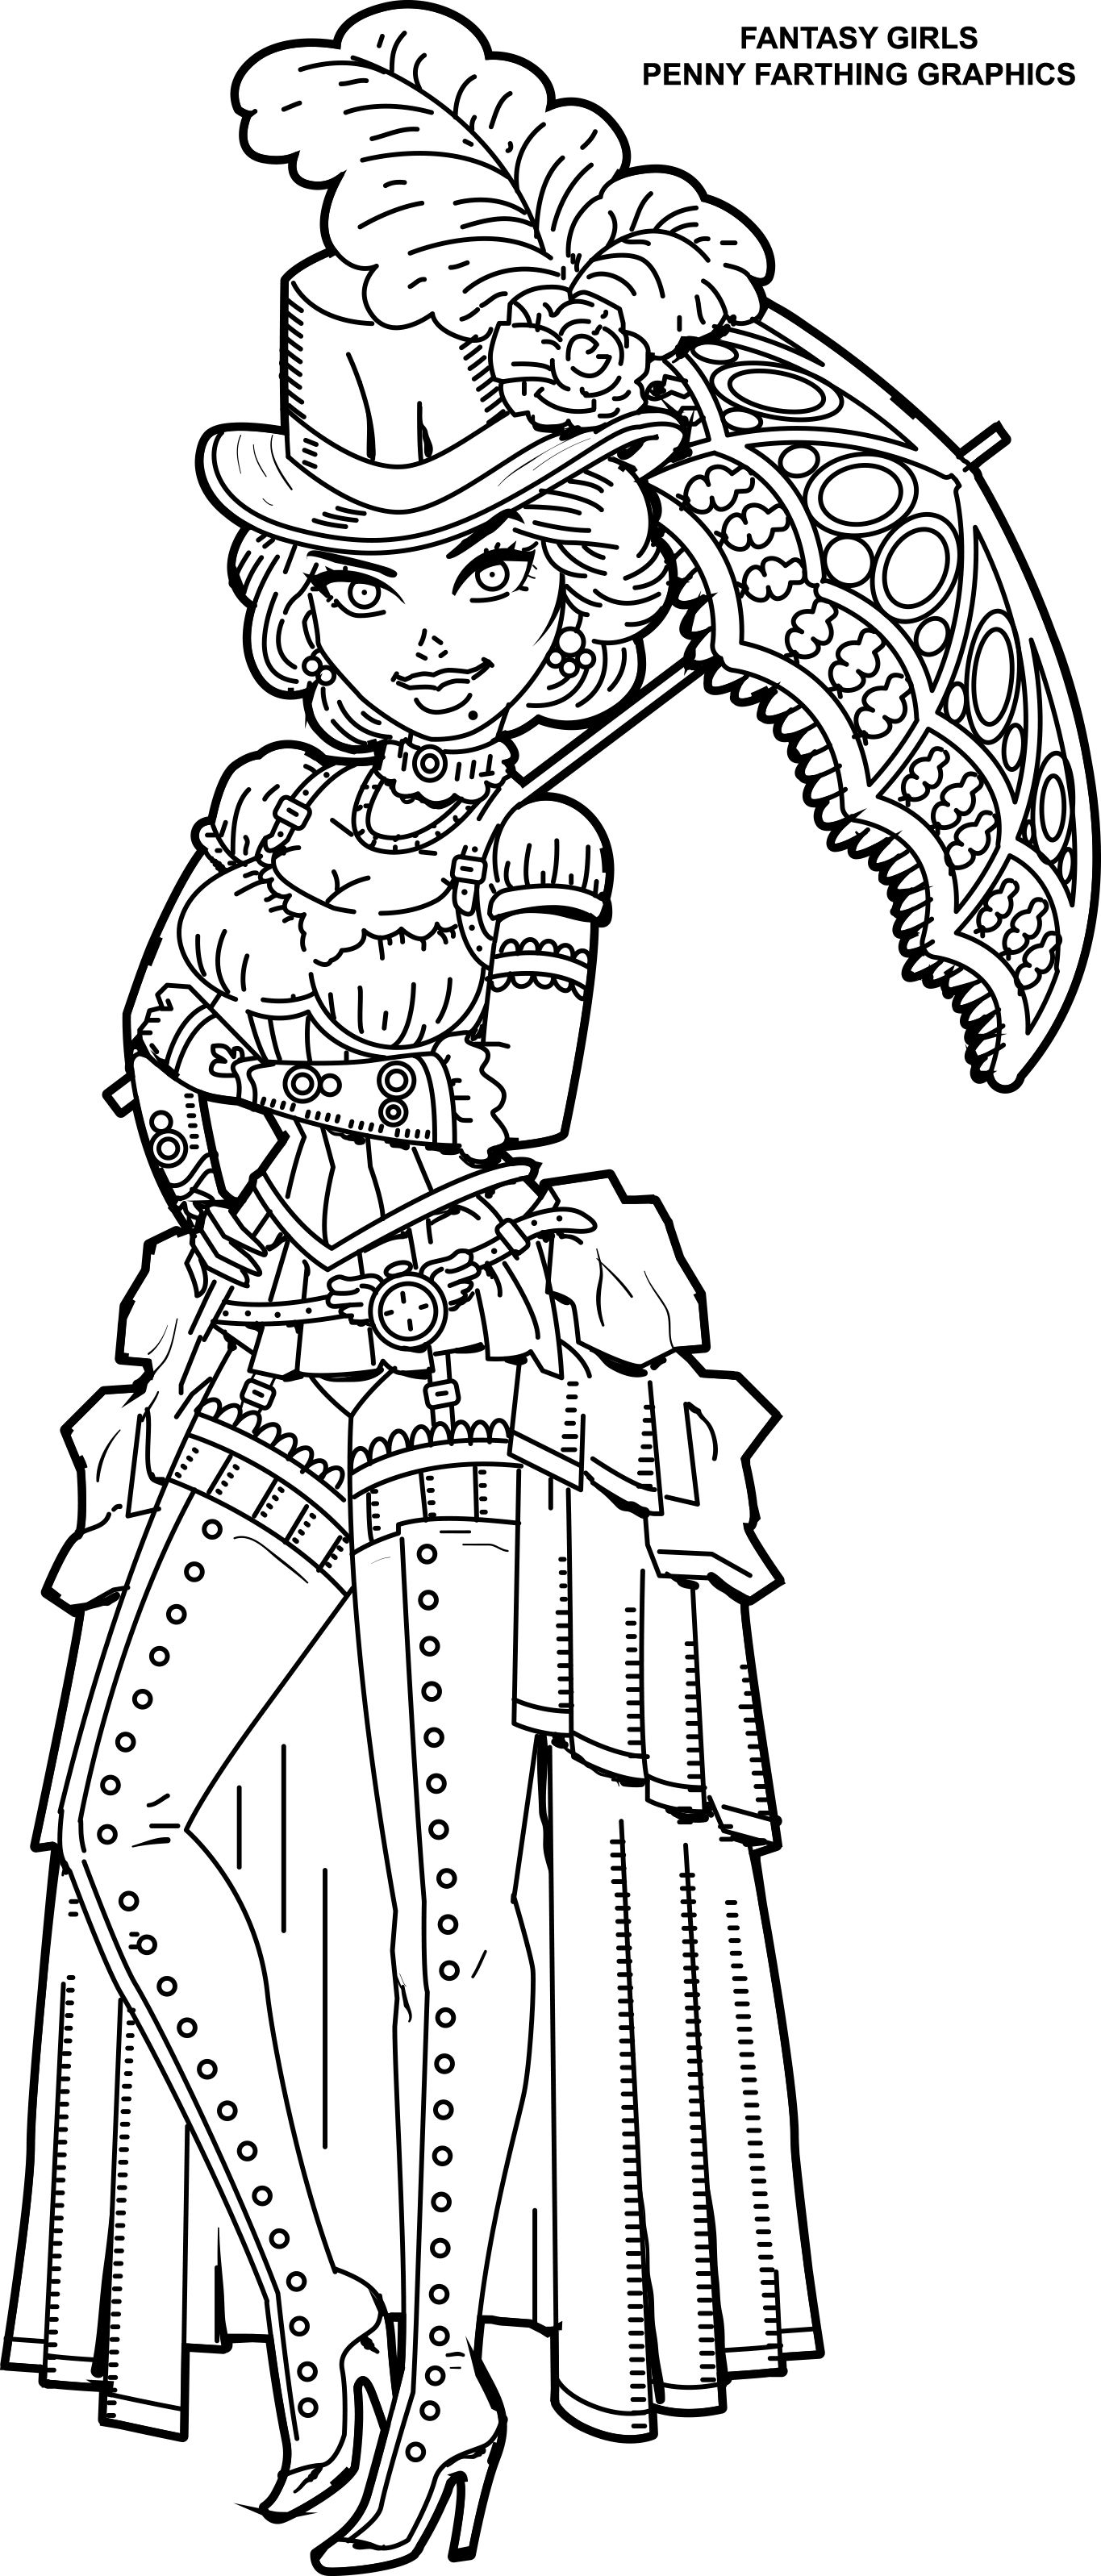 steampunk gothic fairy coloring pages 58 best images about colouring ppages on pinterest pages coloring fairy steampunk gothic